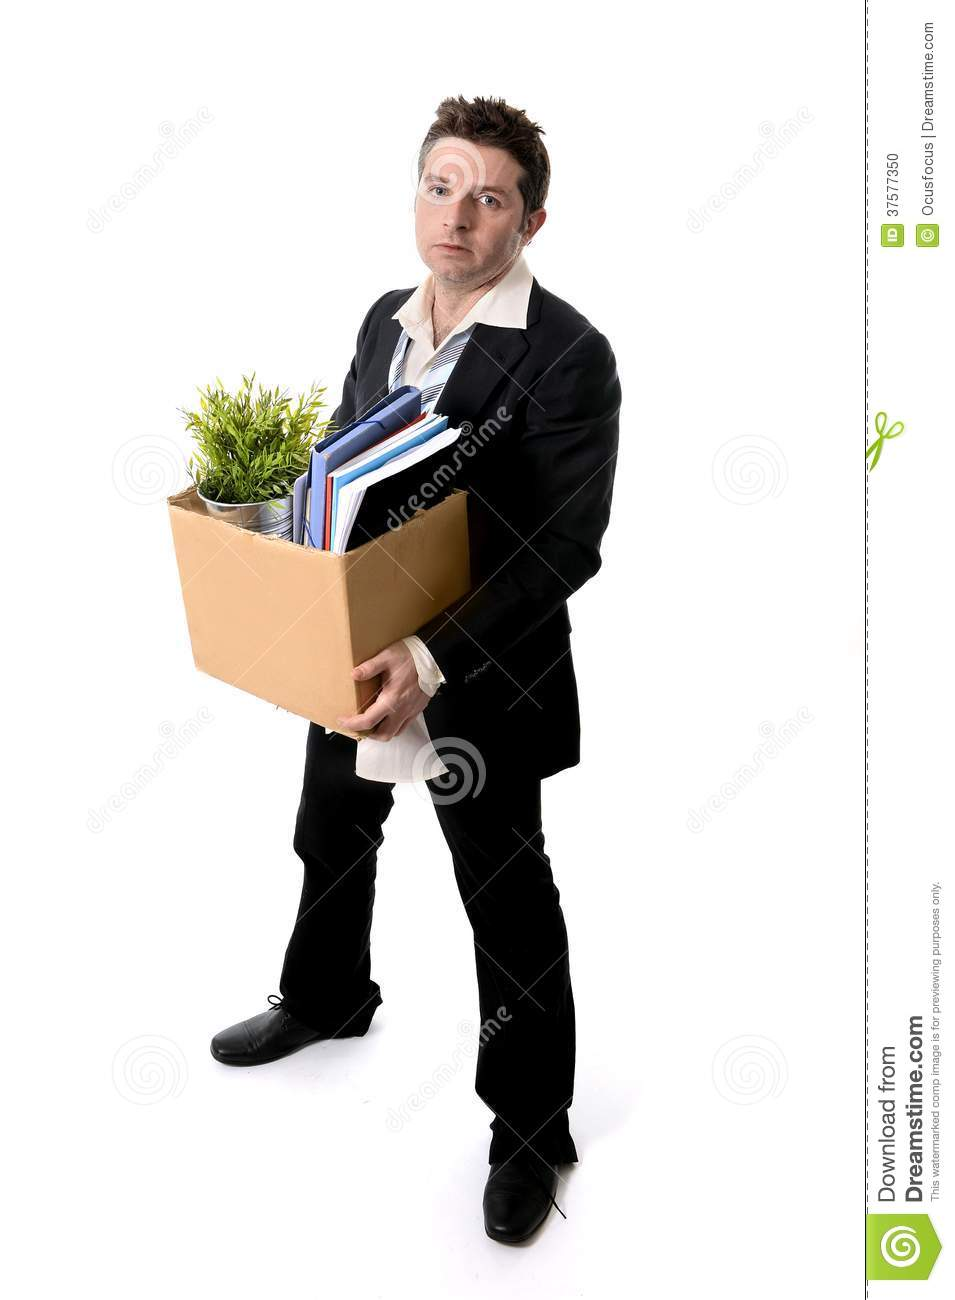 Messy Business Man With Cardboard Box Fired From Job Stock Photo ...